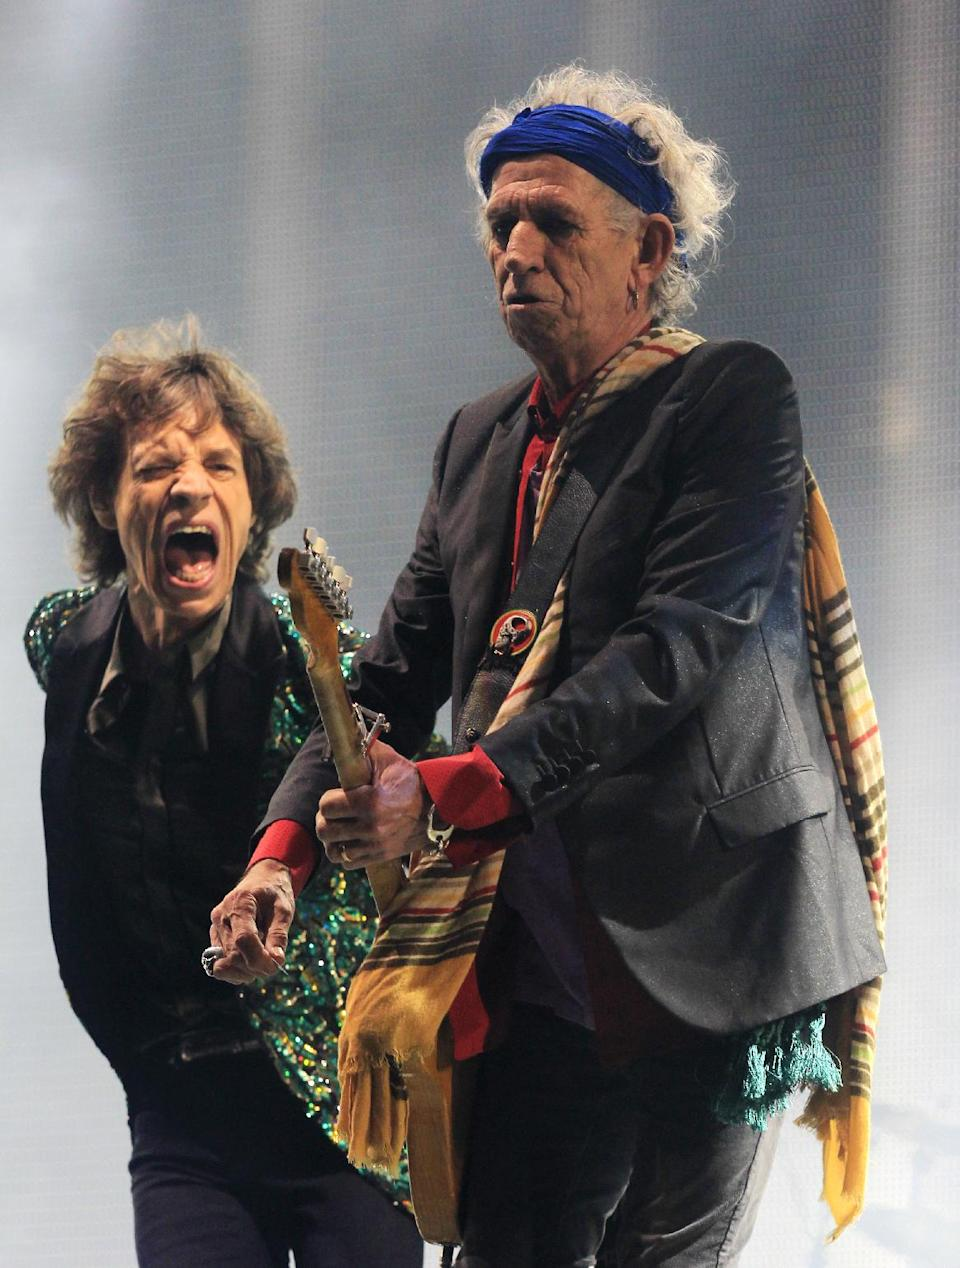 The Rolling Stones perform at Glastonbury, England on Saturday, June 29, 2013. Thousands are to enjoy the three day festival that started on Friday, June 28, 2013 with headliners Arctic Monkeys, the Rolling Stones and Mumford and Sons. (Photo by Jim Ross/Invision/AP)